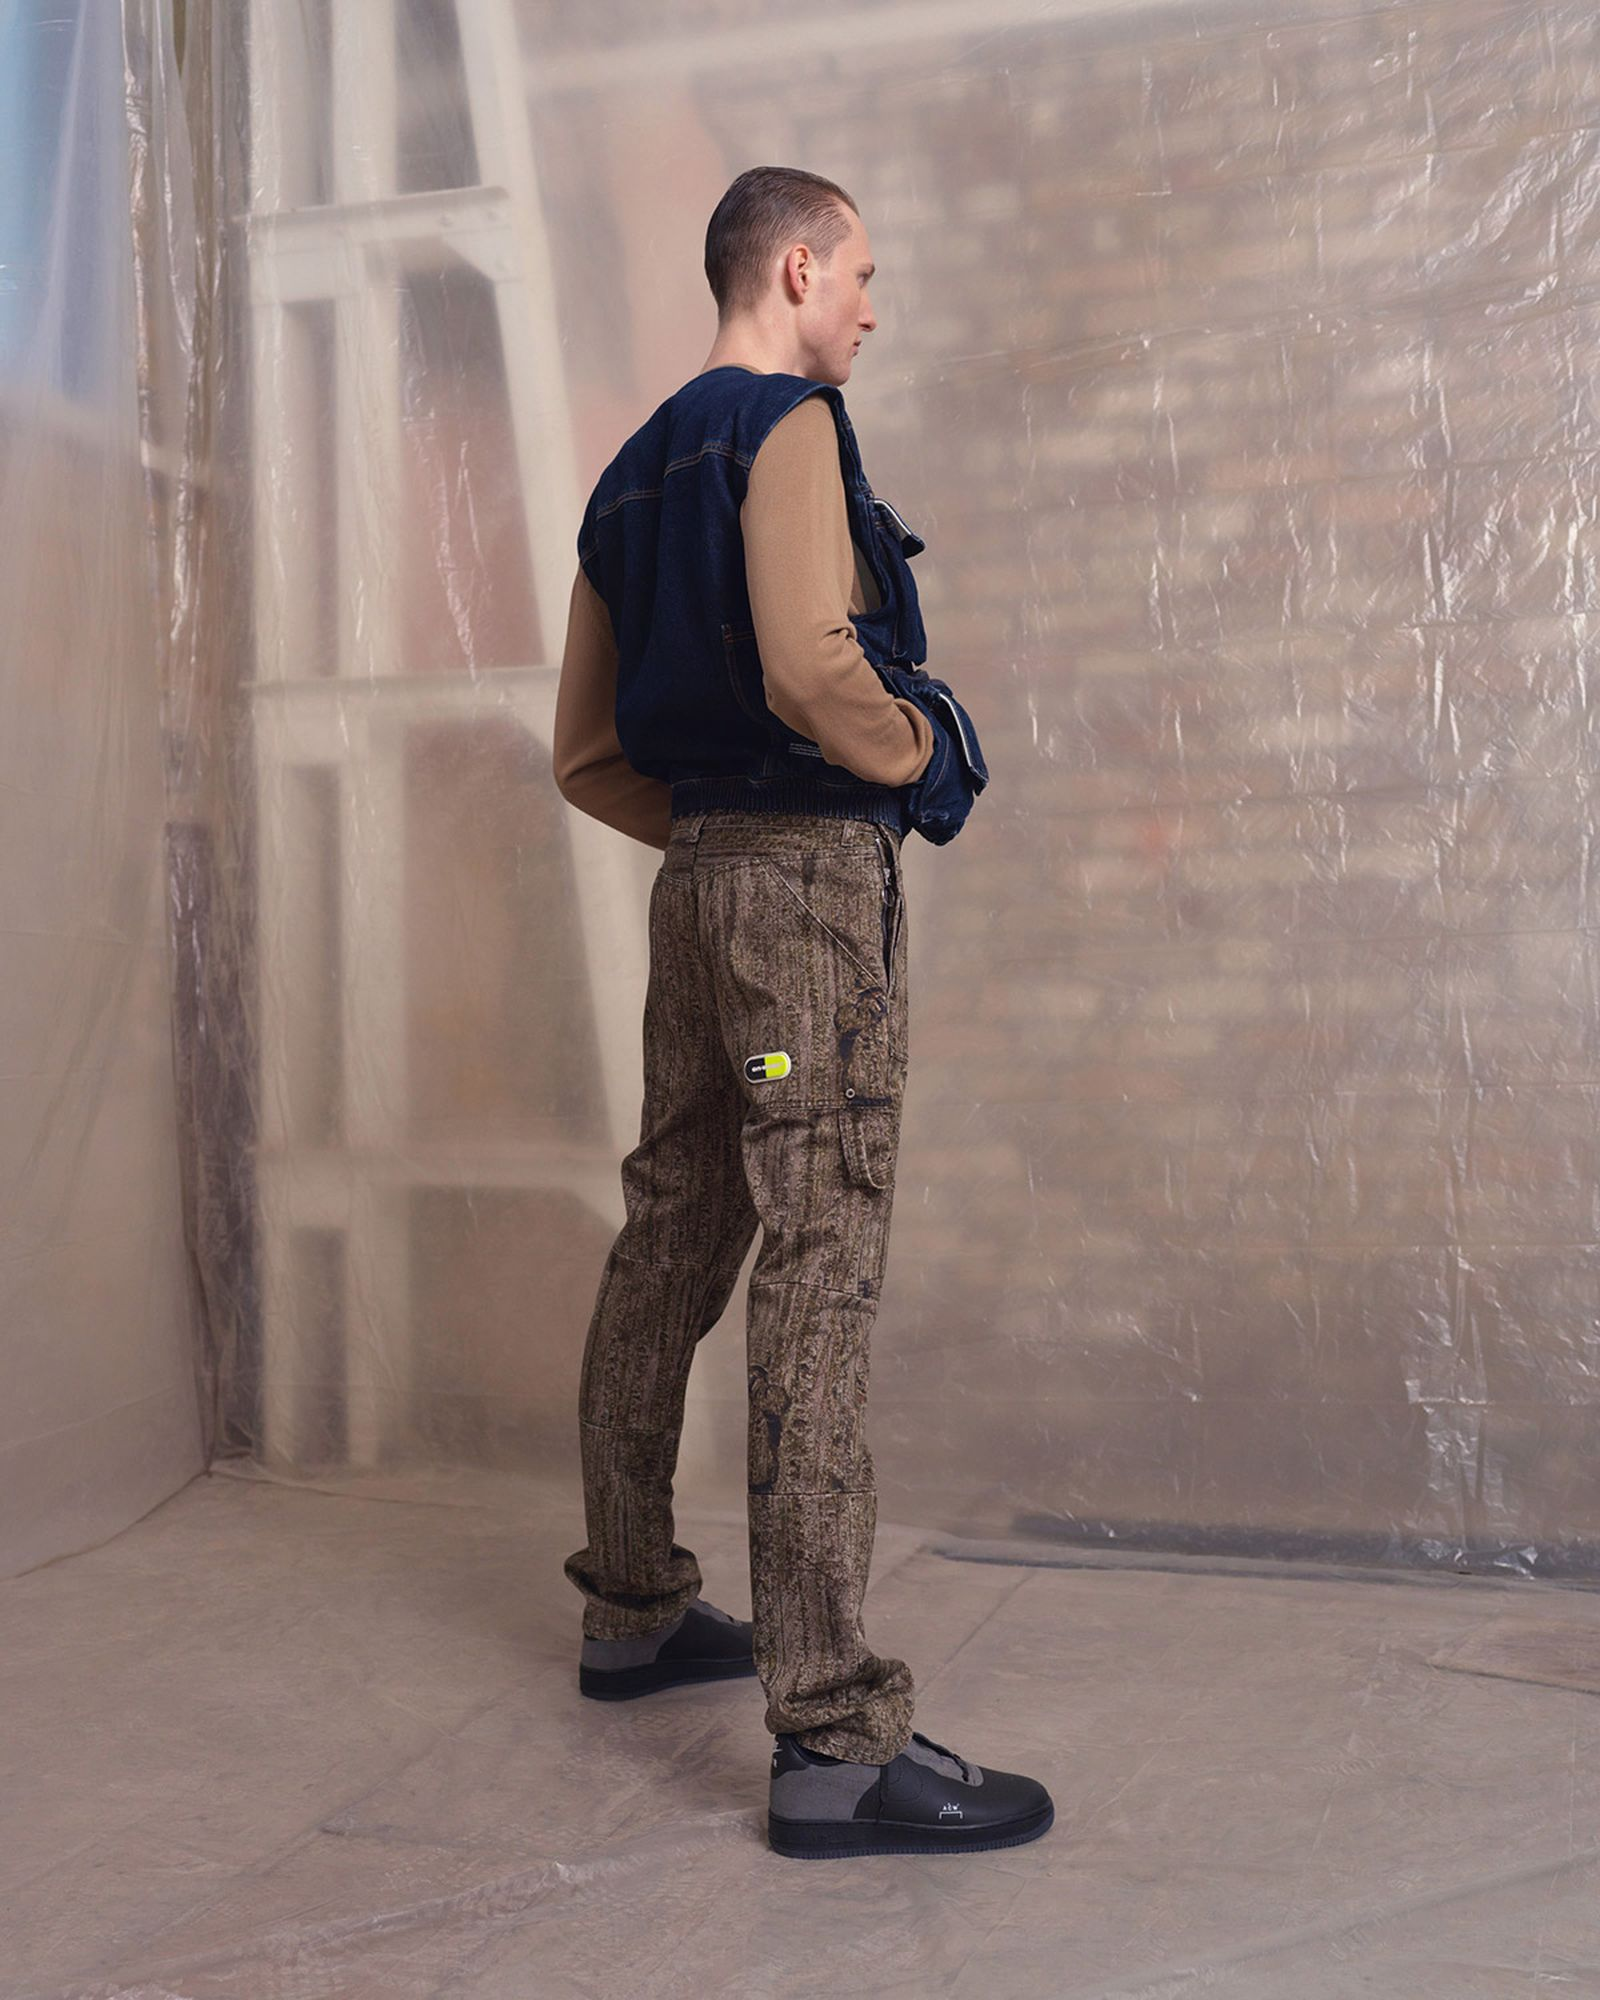 Model is wearing: Trousers and denim vest by OFF-WHITE, sweater by OAMC, shoes by Nike x A-COLD-WALL*